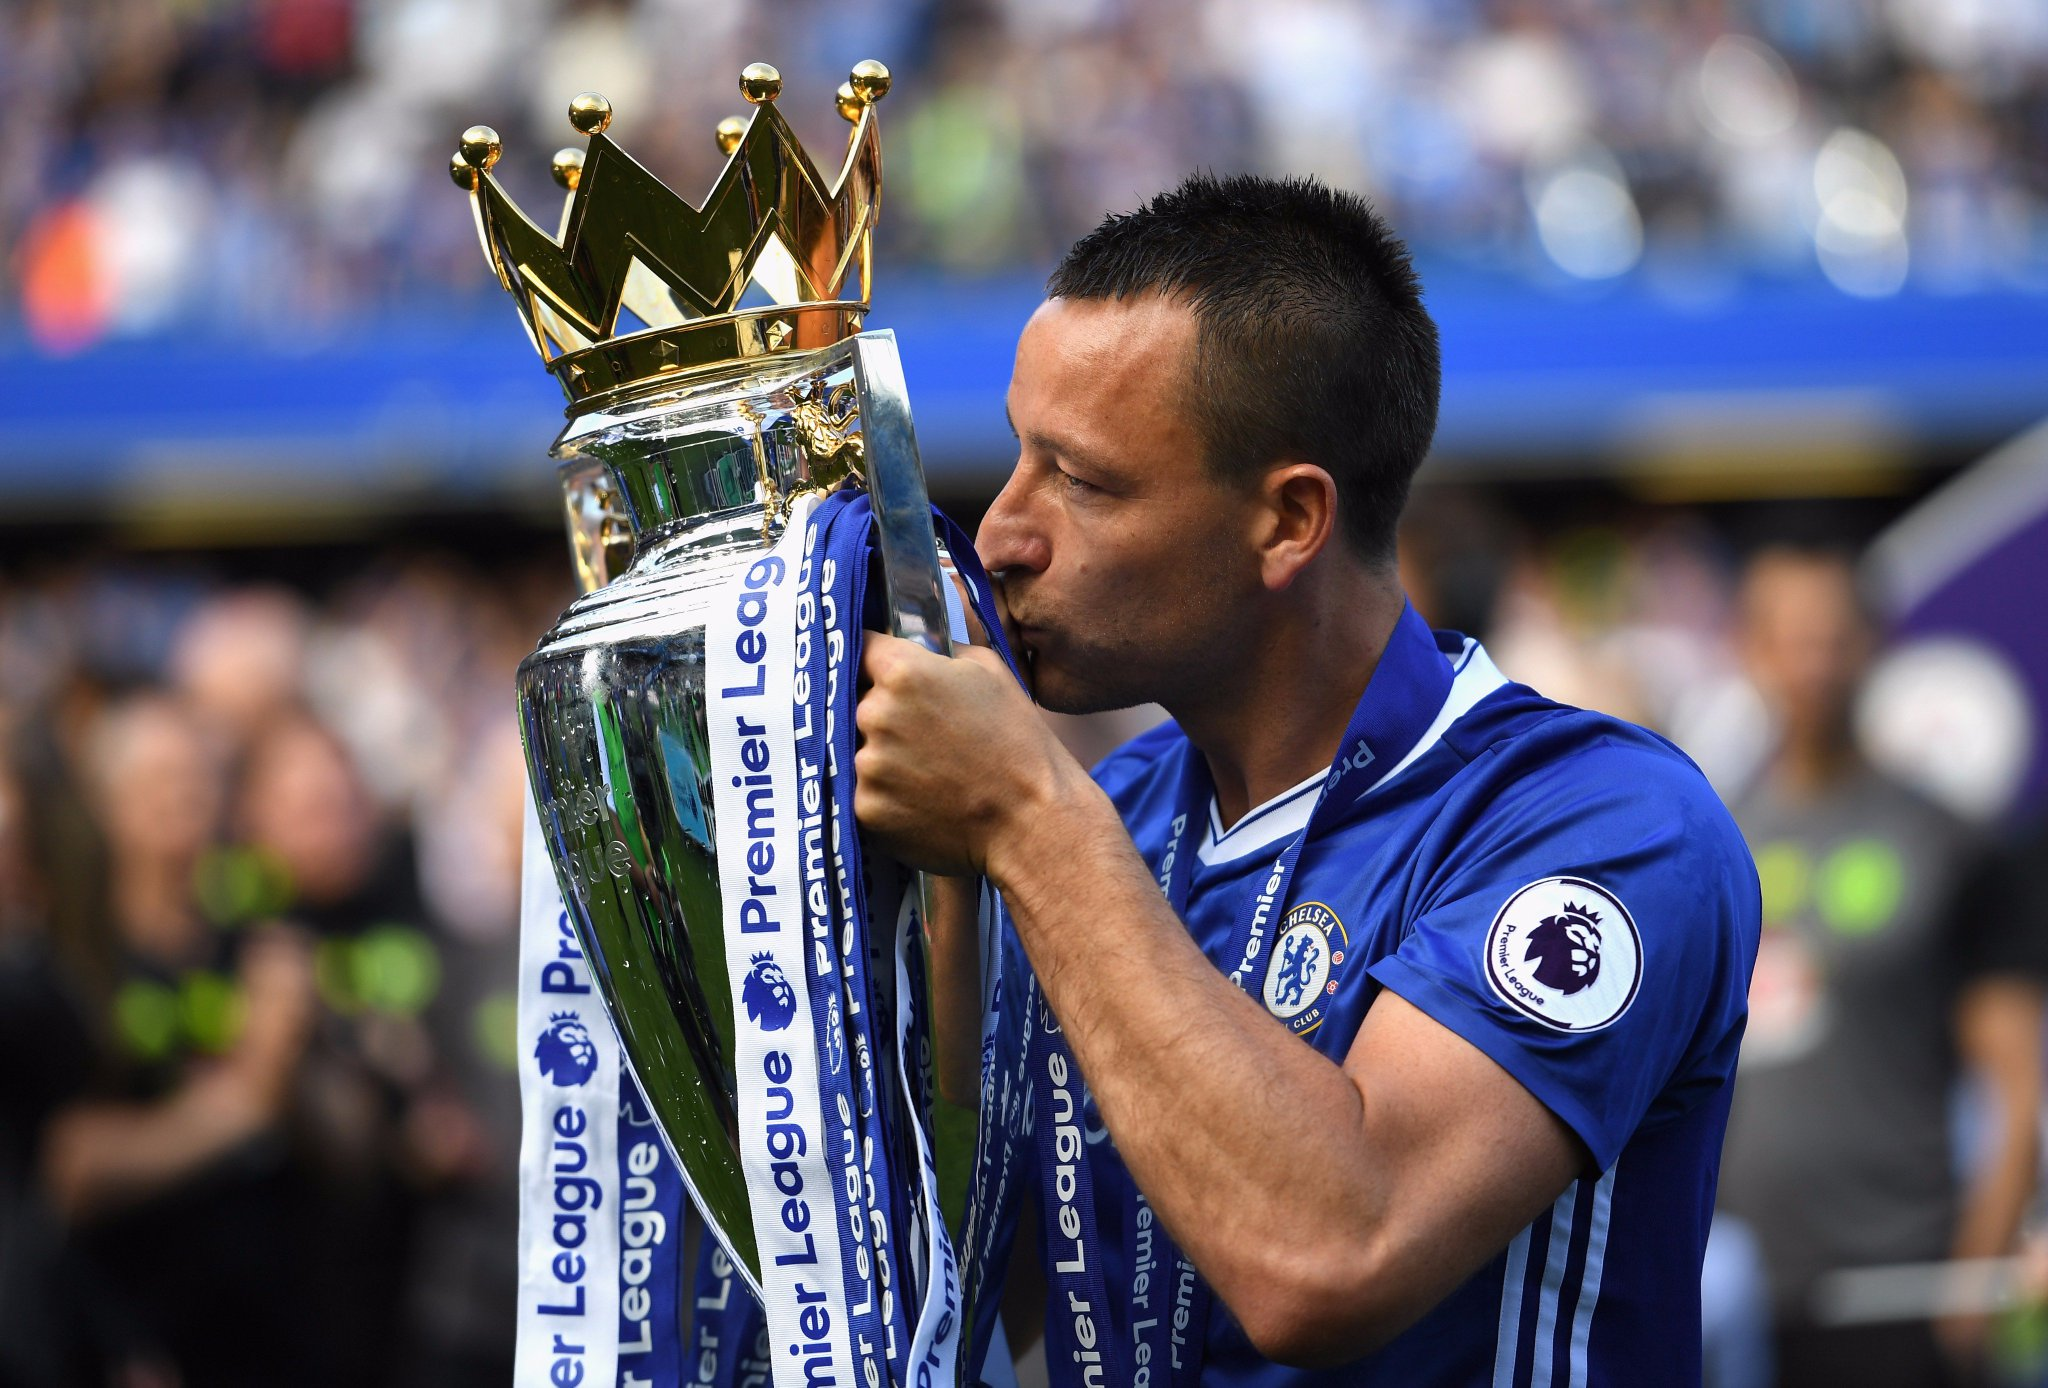 Happy birthday to John Terry, who turns 37 today!